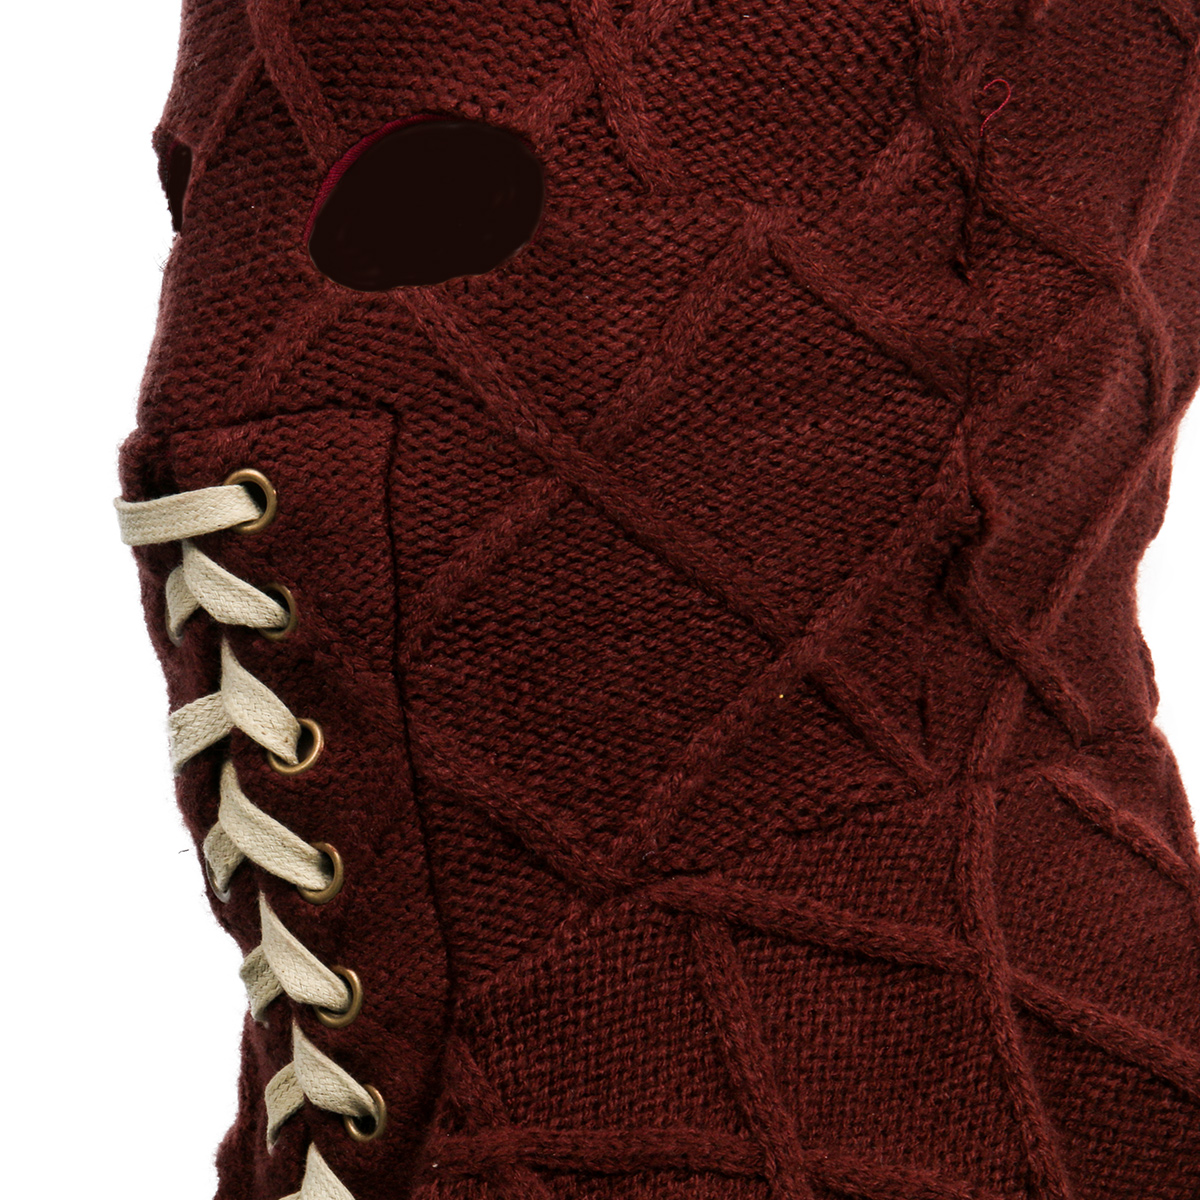 Brightburn Red Hood Cosplay Effrayant Masque d/'Horreur Halloween Costumes Accessoires NOUVEAU